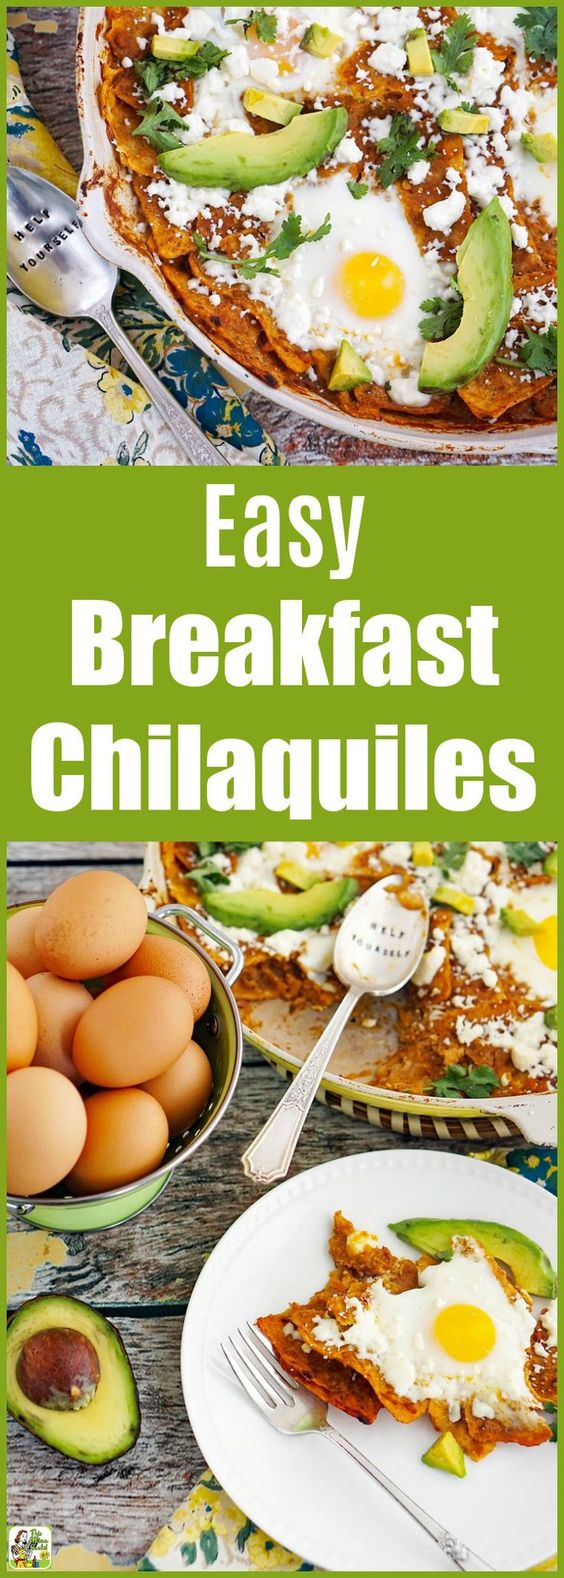 How to Make an Easy Breakfast Chilaquiles Recipe with Eggs